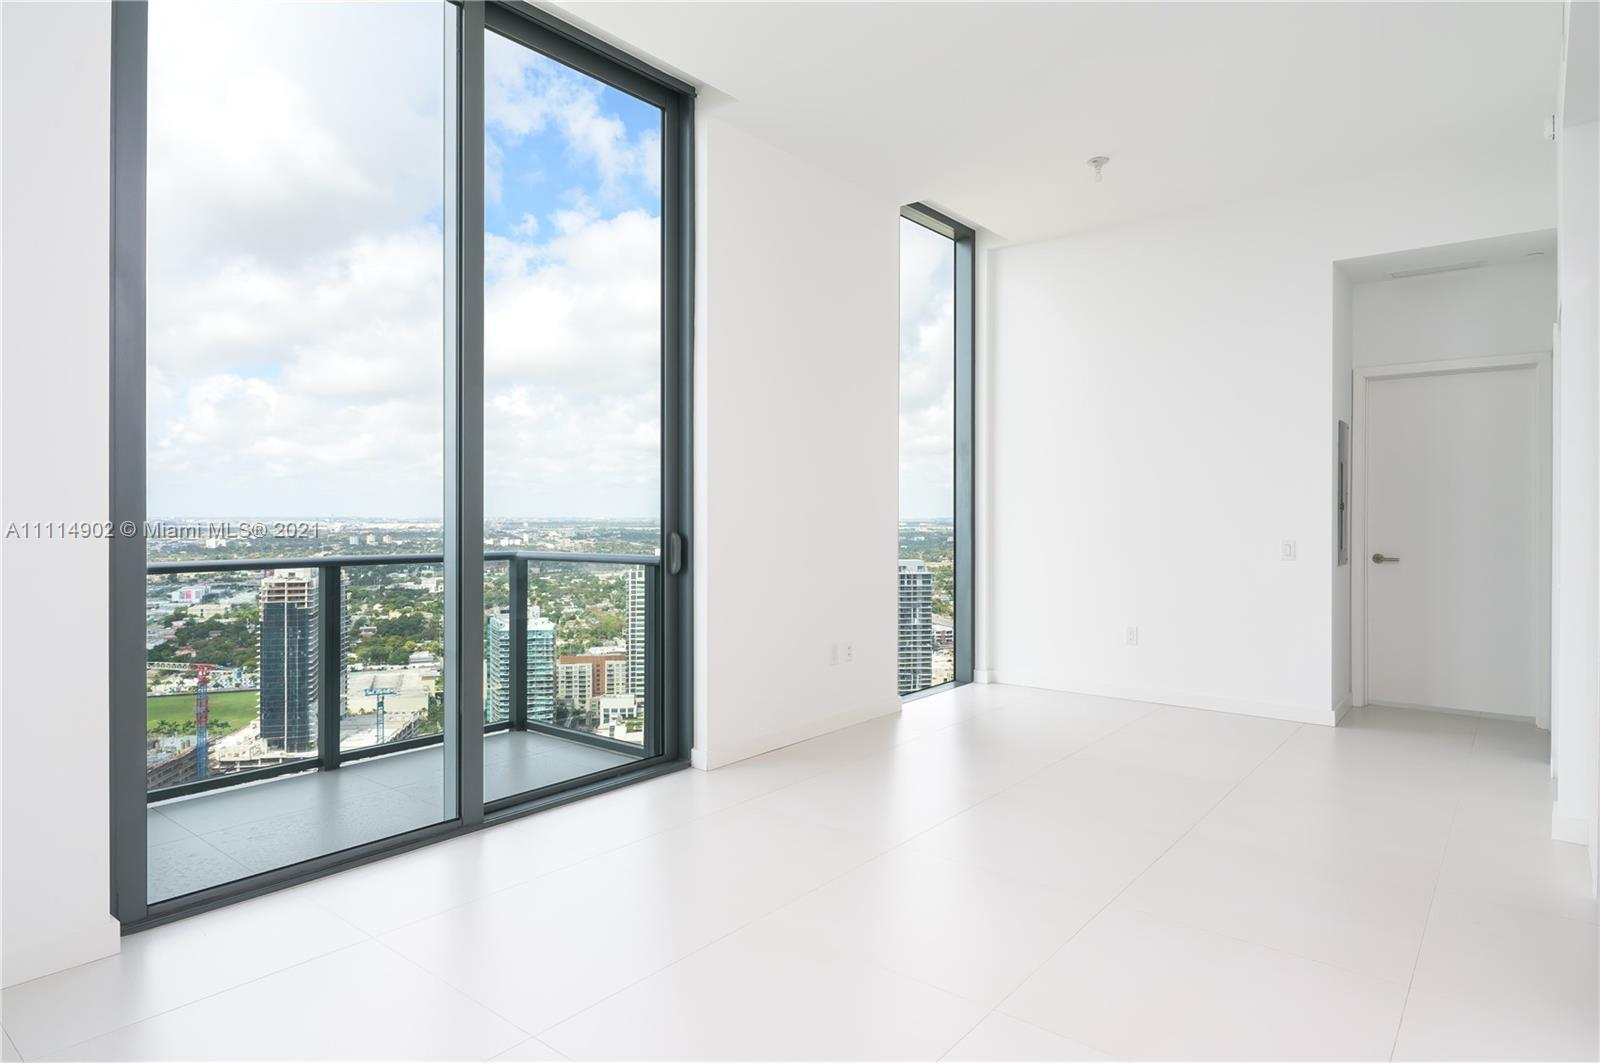 BEAUTIFUL PENTHOUSE IN ONE OF THE MOST EXCLUSIVE RESIDENTIAL BUILDINGS IN MIAMI, A SPECTACULAR VIEW